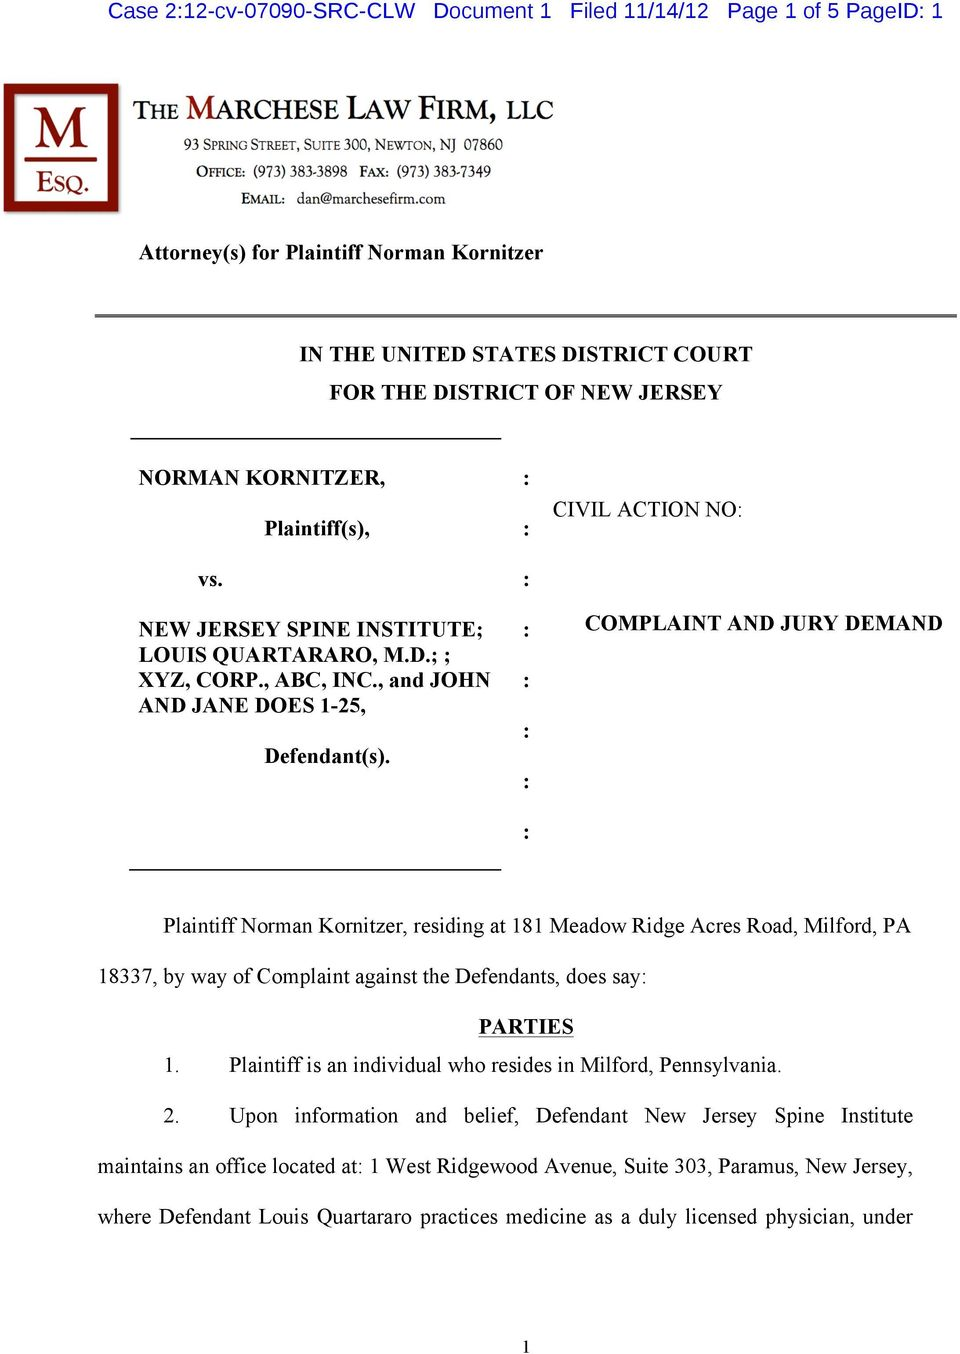 CIVIL ACTION NO COMPLAINT AND JURY DEMAND Plaintiff Norman Kornitzer, residing at 181 Meadow Ridge Acres Road, Milford, PA 18337, by way of Complaint against the Defendants, does say PARTIES 1.